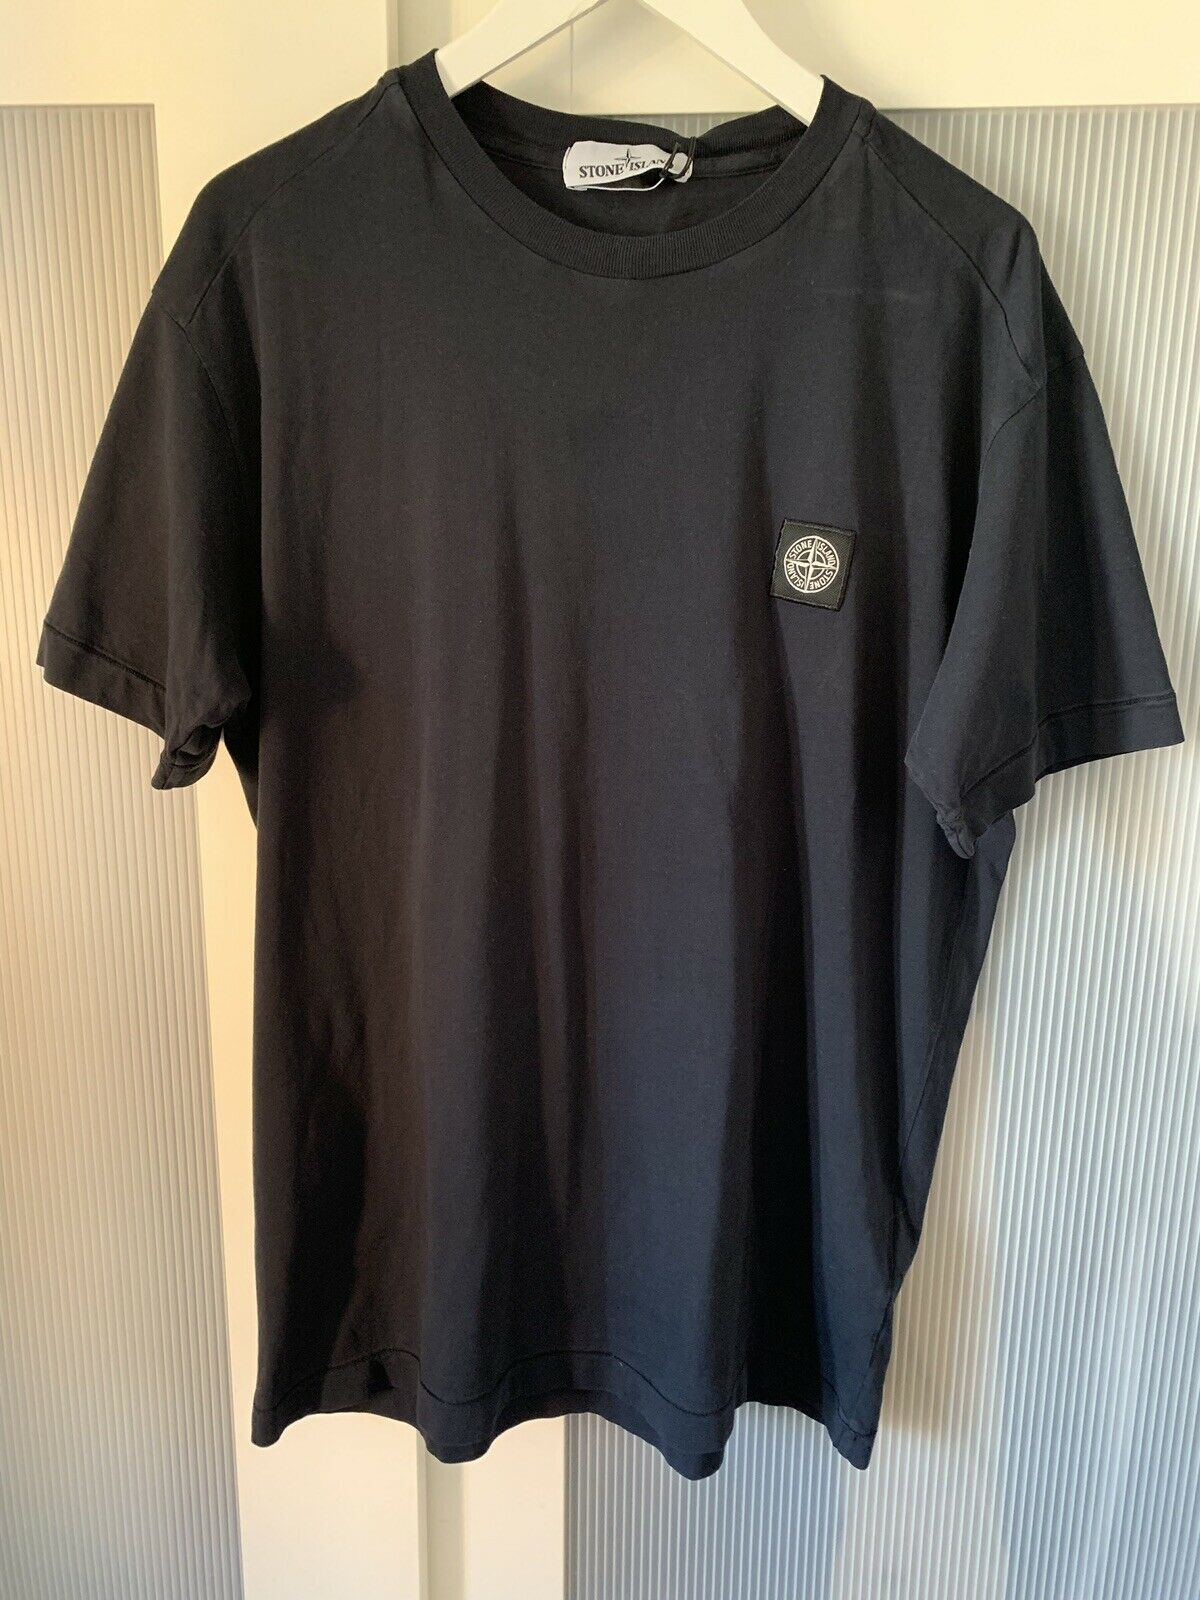 Stone Island  männer  themd top Größe in photos by tape 100% authentic ultra rare